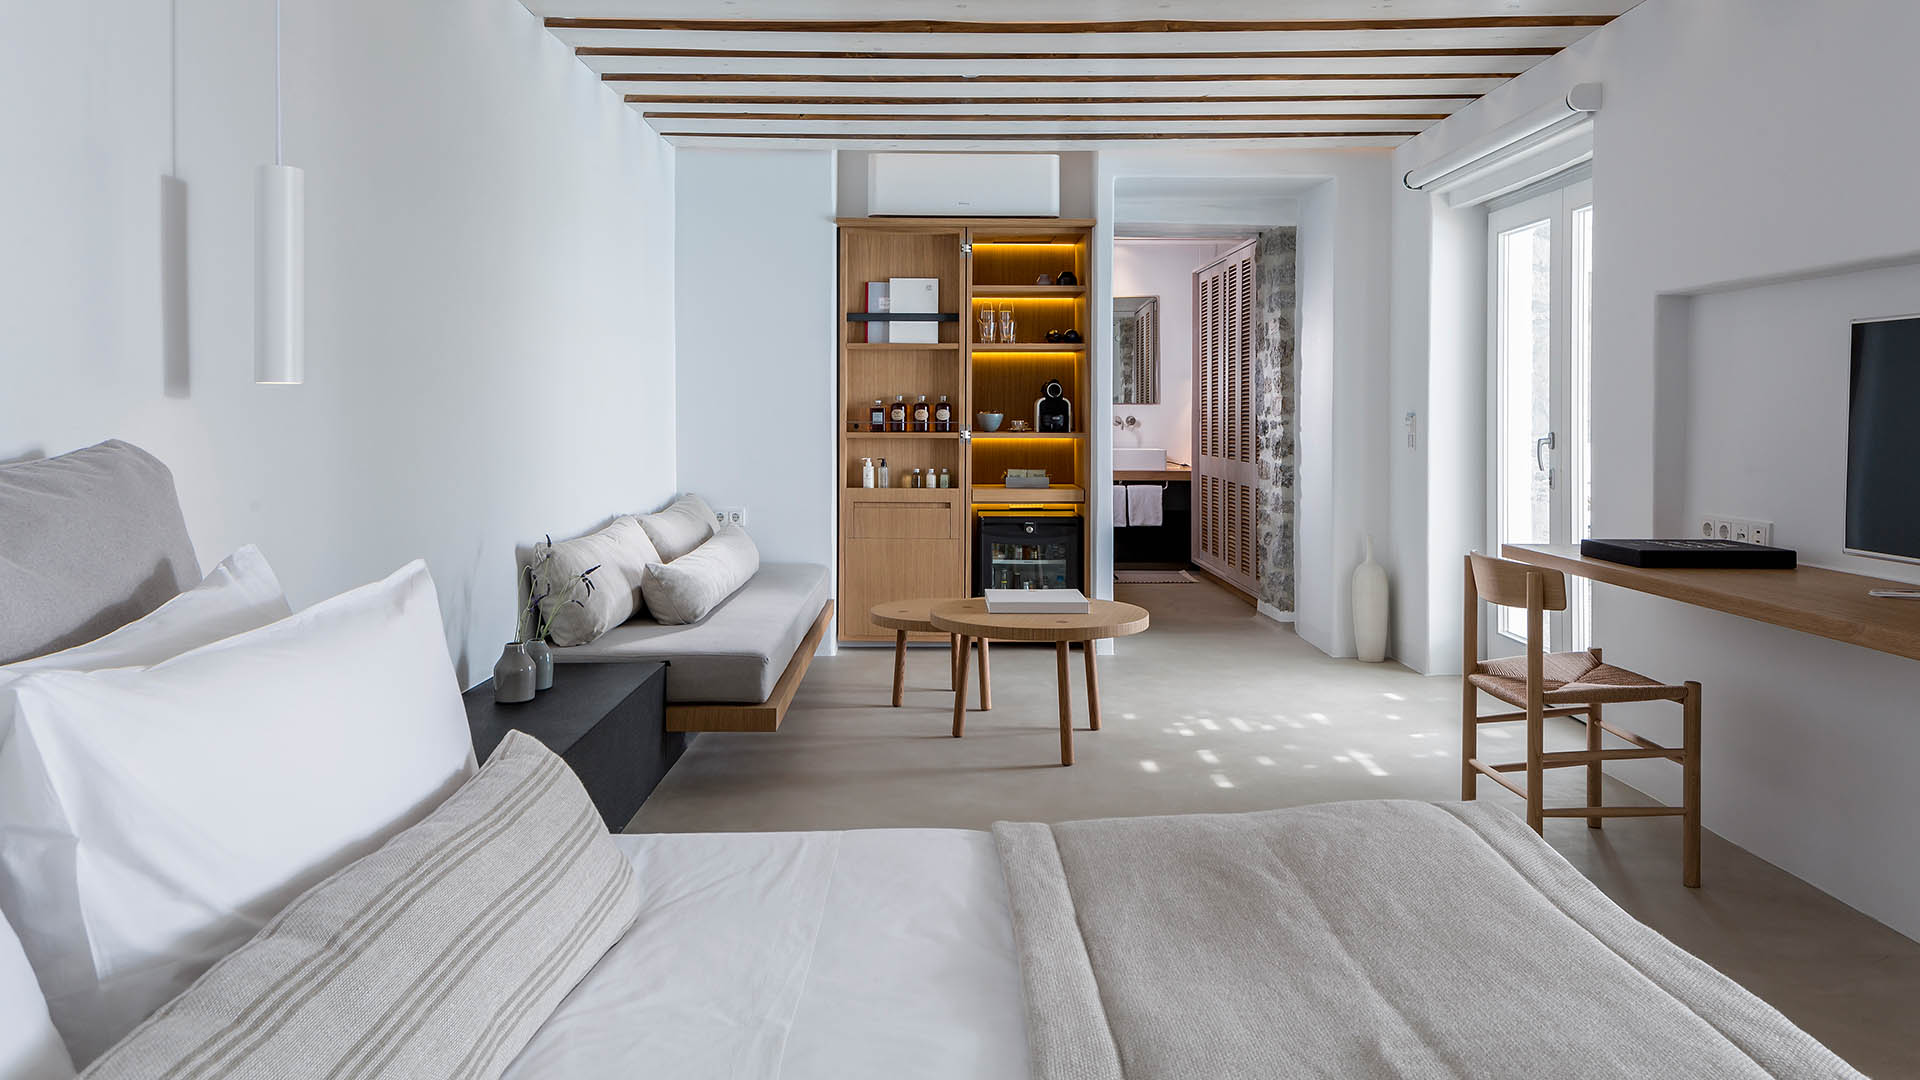 Bill & Coo Boutique Hotel - BILL&COO SUITES (4)